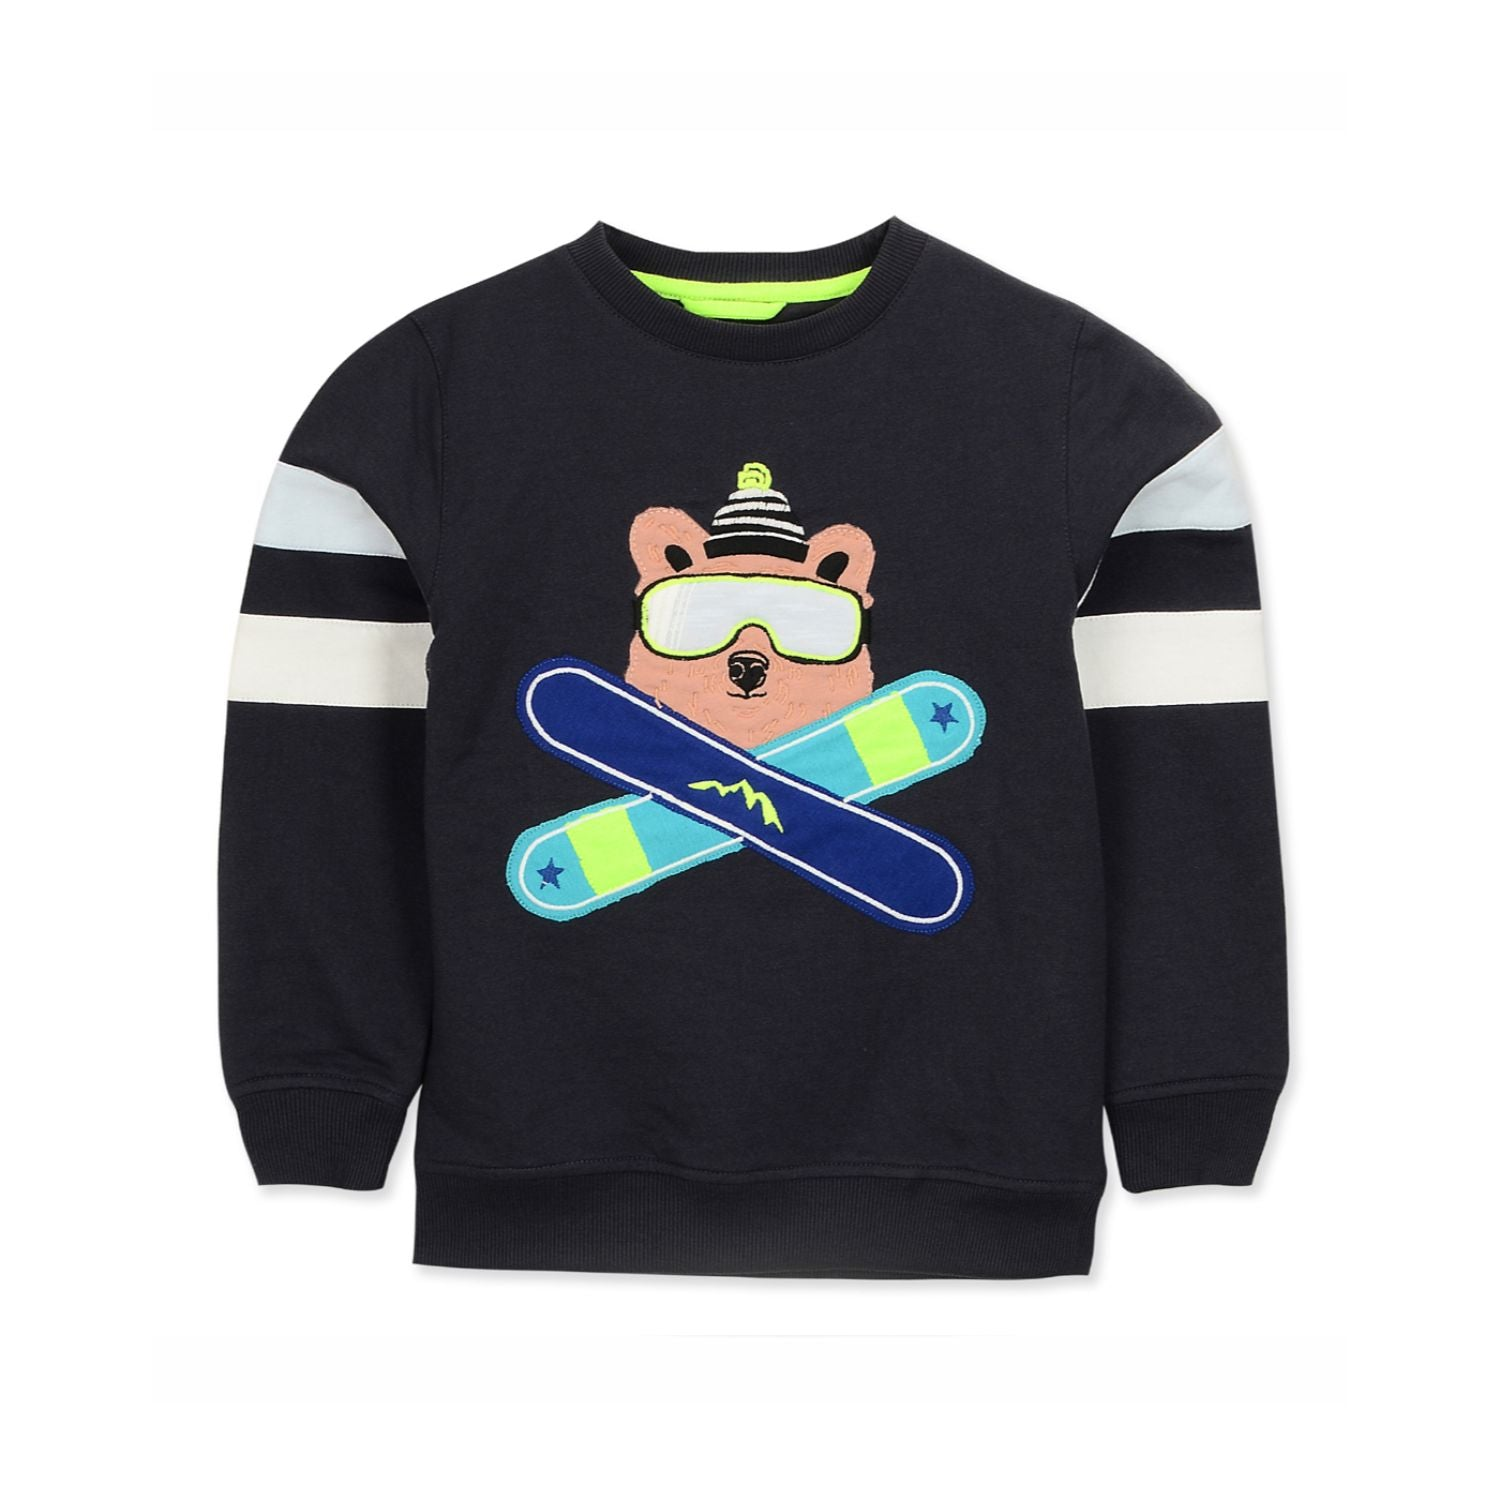 Adventure Sport Sweatshirt for kids